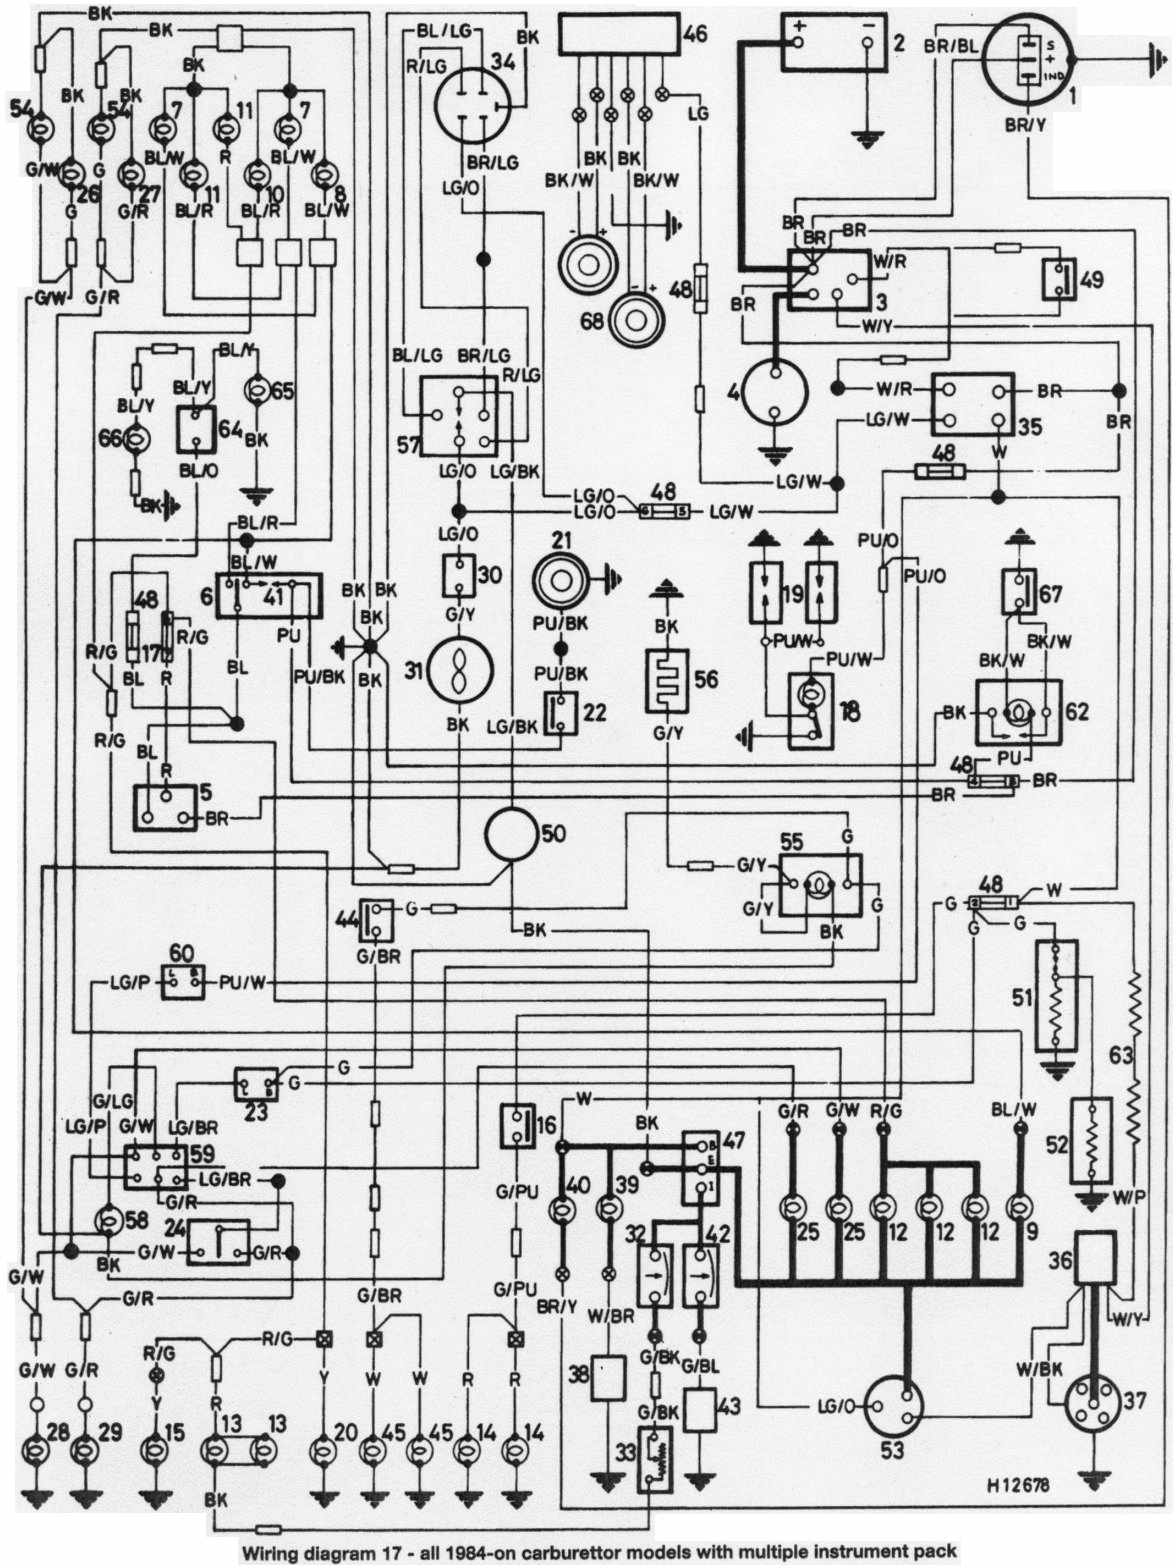 wiring diagram of 1984 onwards all mini series with multiple instrument pack morris minor wiring diagram dolgular com morris minor indicator wiring diagram at gsmx.co